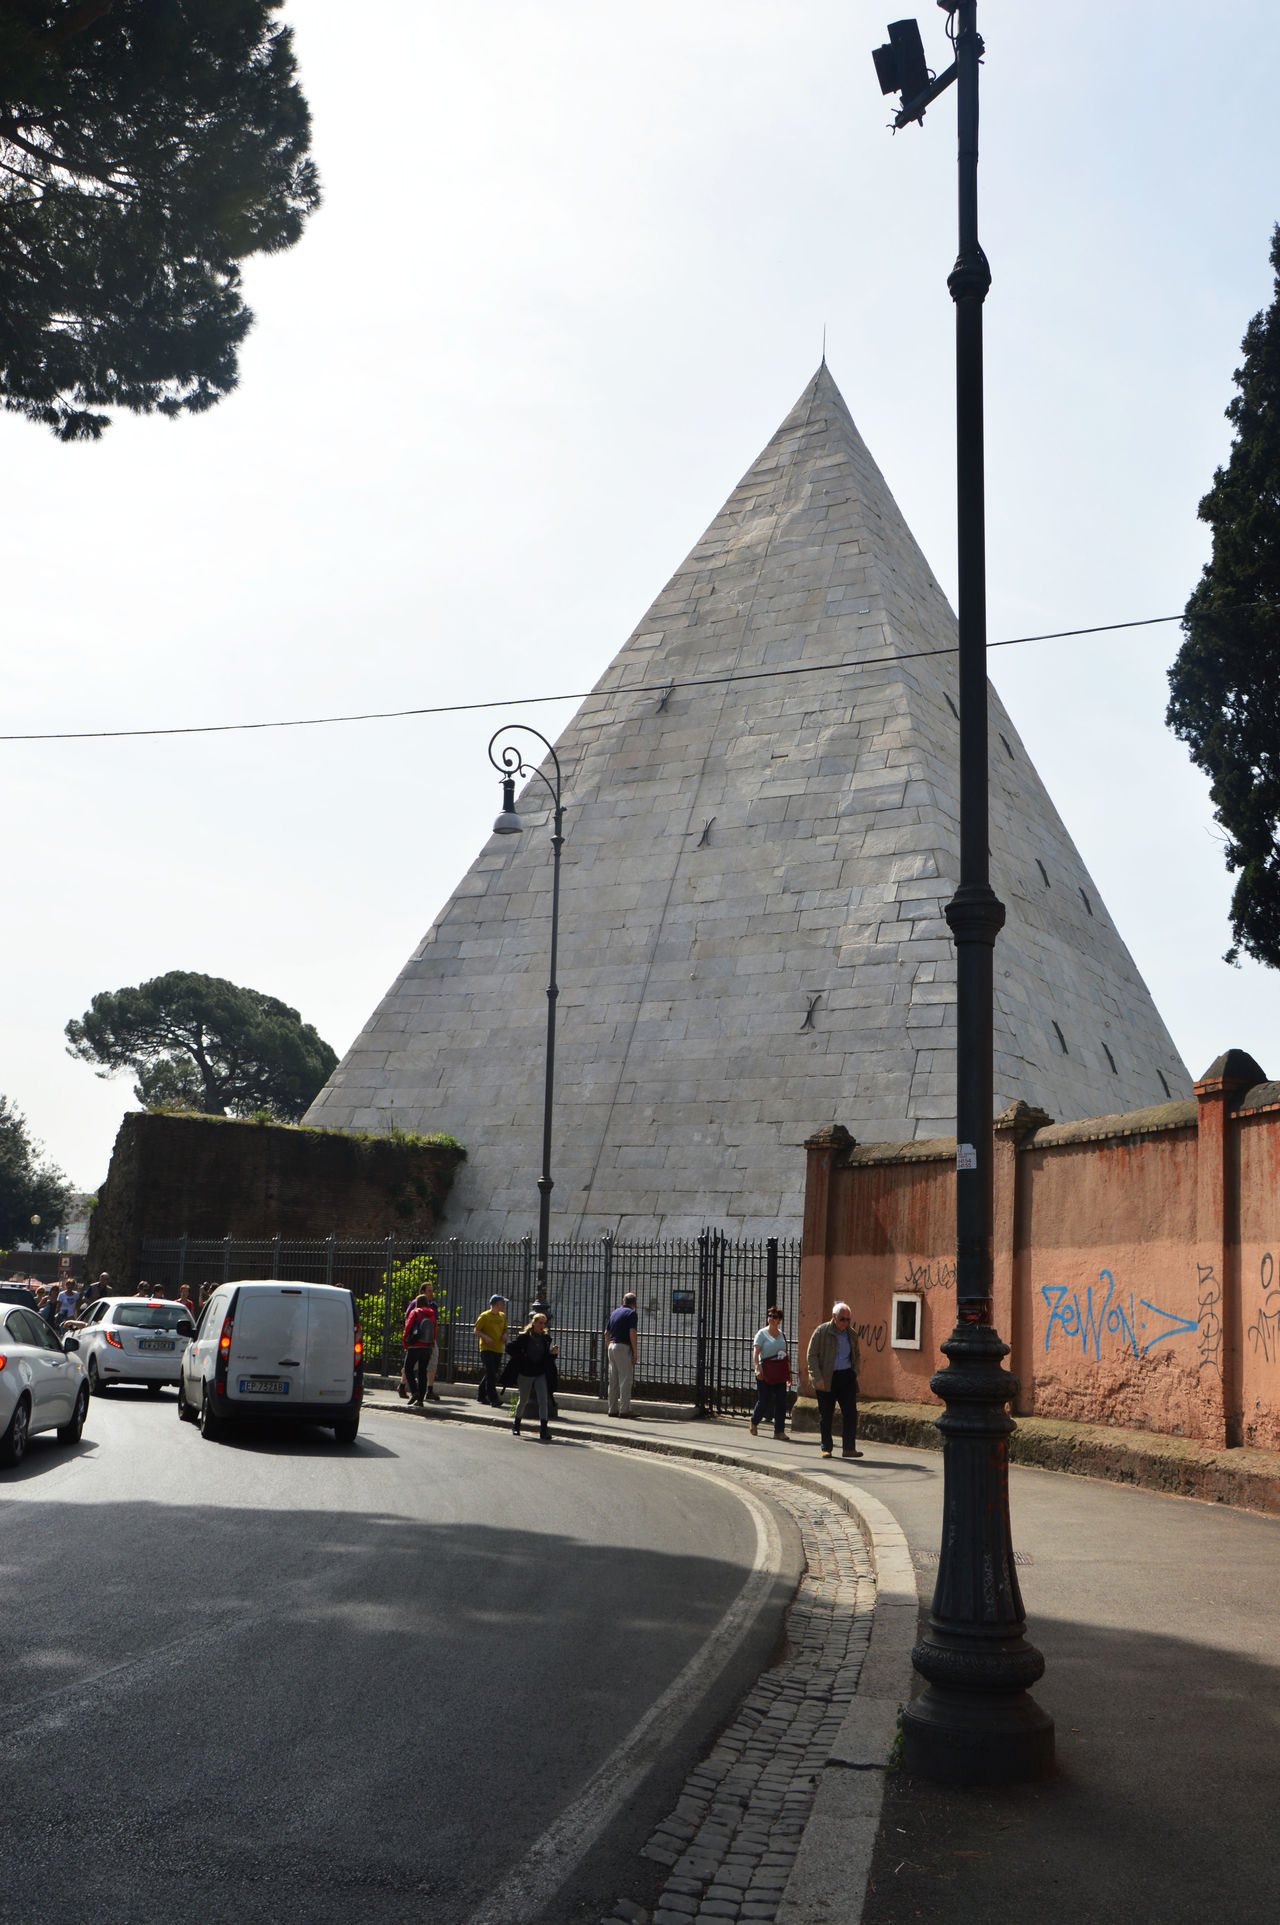 Architecture Building Exterior Car Day Mountain No People Outdoors Piramide Piramide Bianca Piramide Cestia Piramide Roma Pirámides Road Roma Roma Street Rome Italy Rome Italy🇮🇹 Sky Street Street Rome Travel Travel Destinations Tree